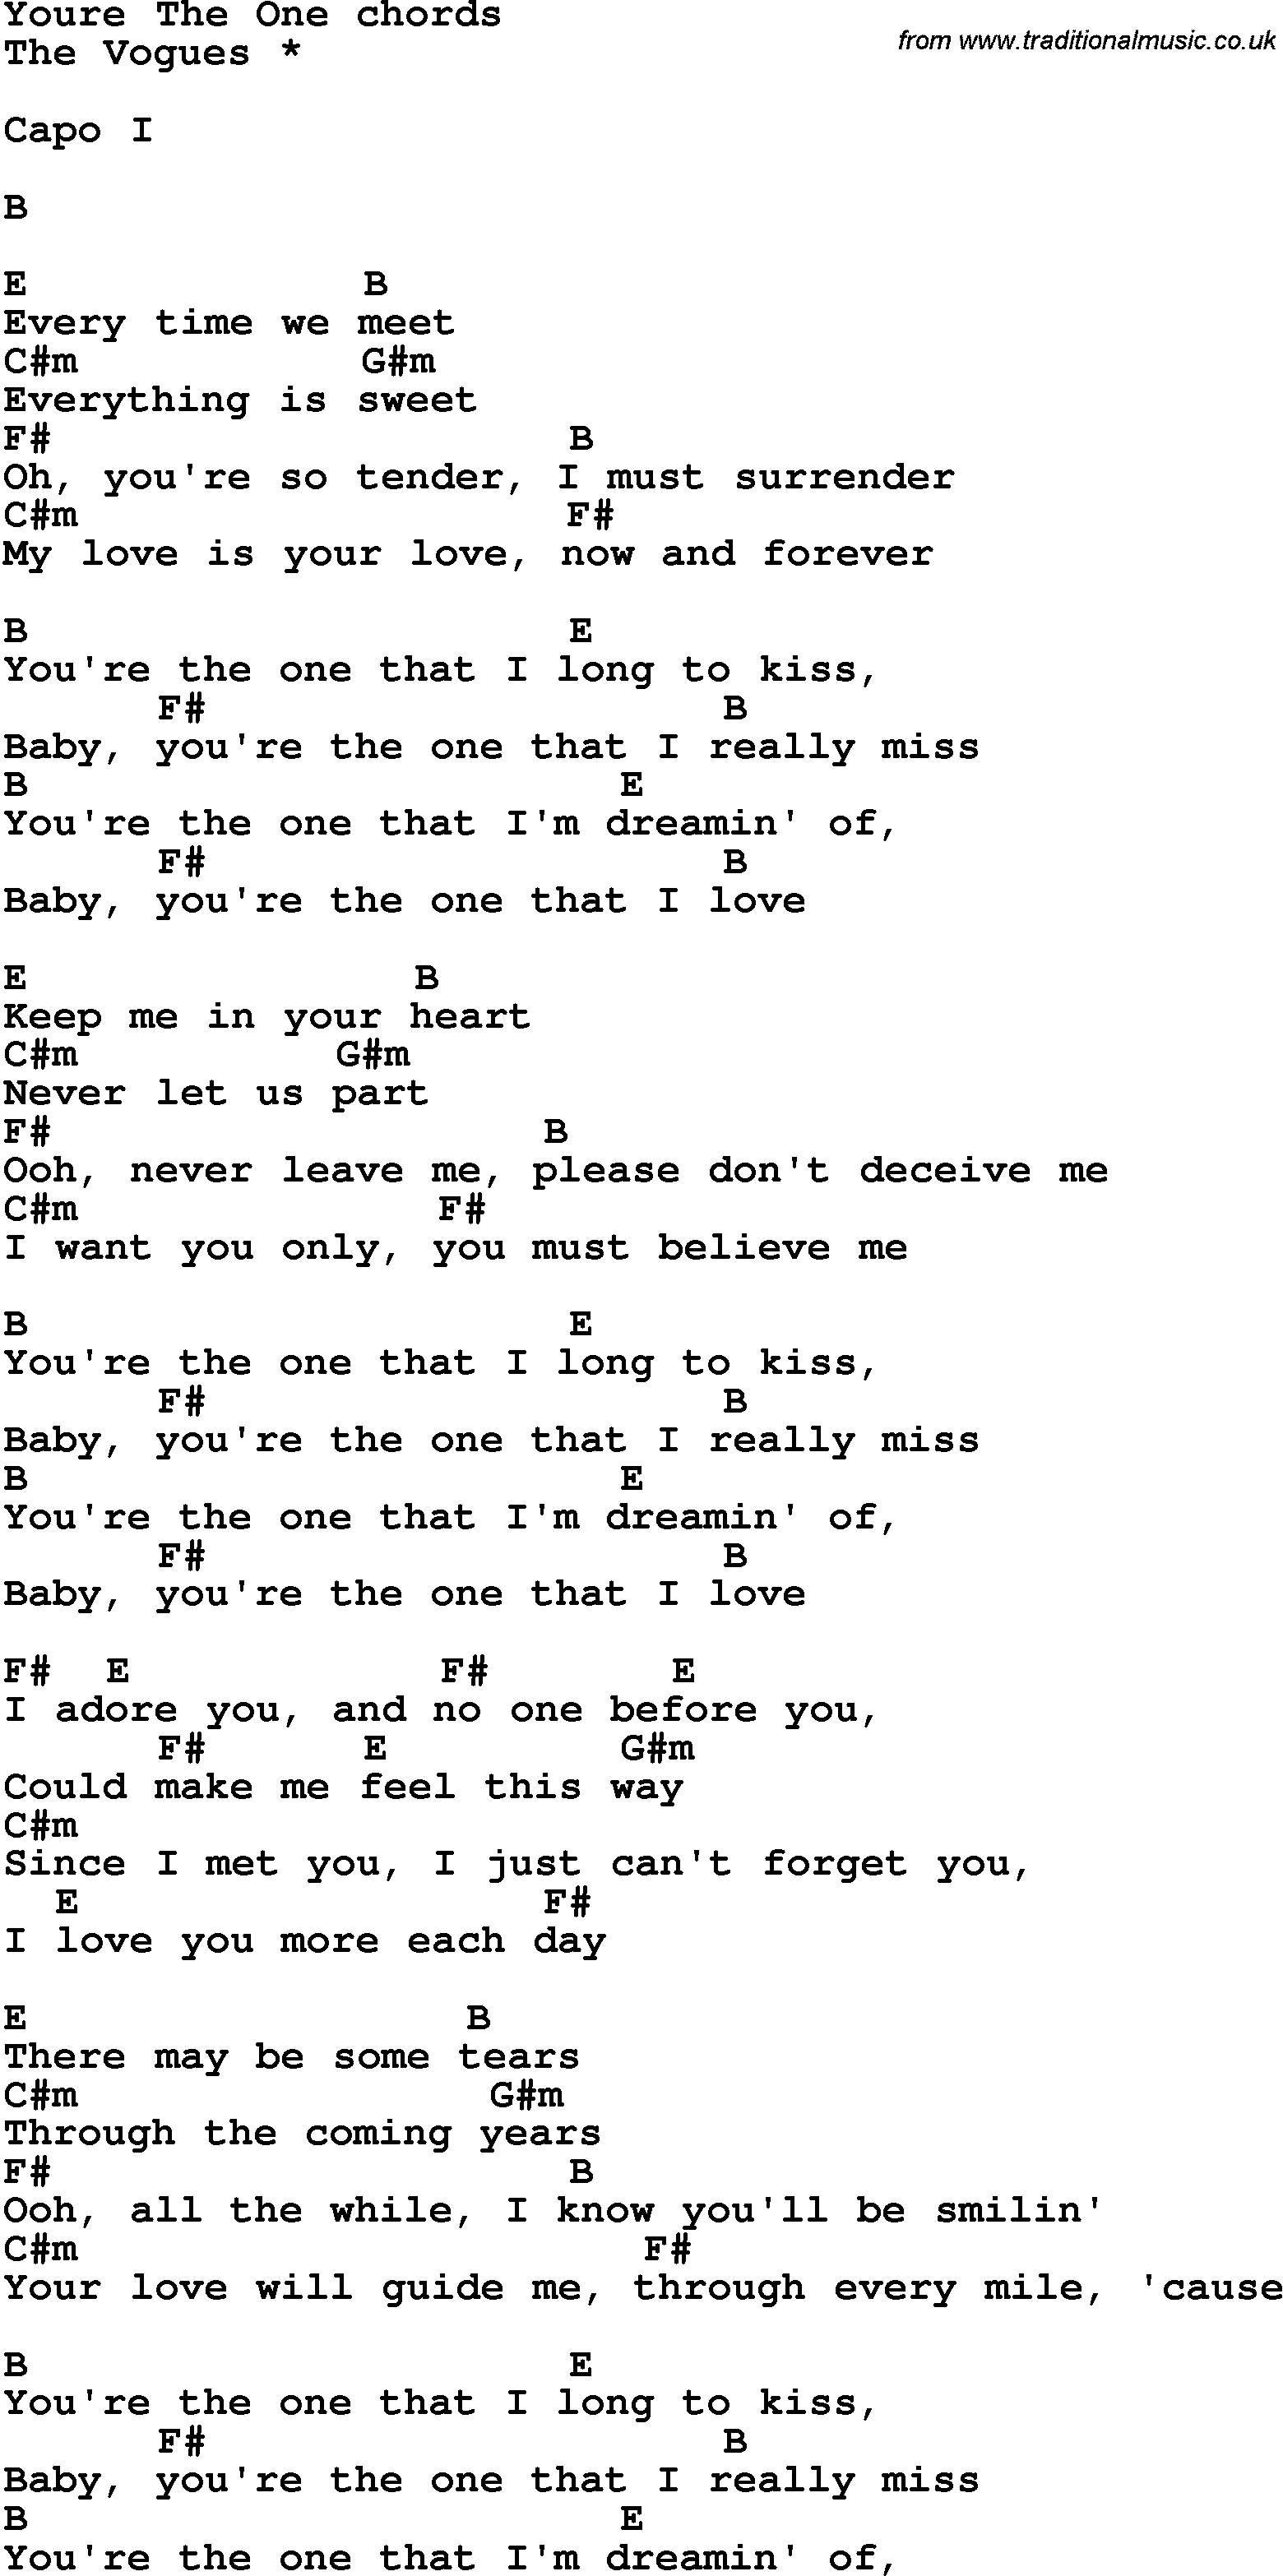 Song Lyrics With Guitar Chords For Youre The One The Vogues If